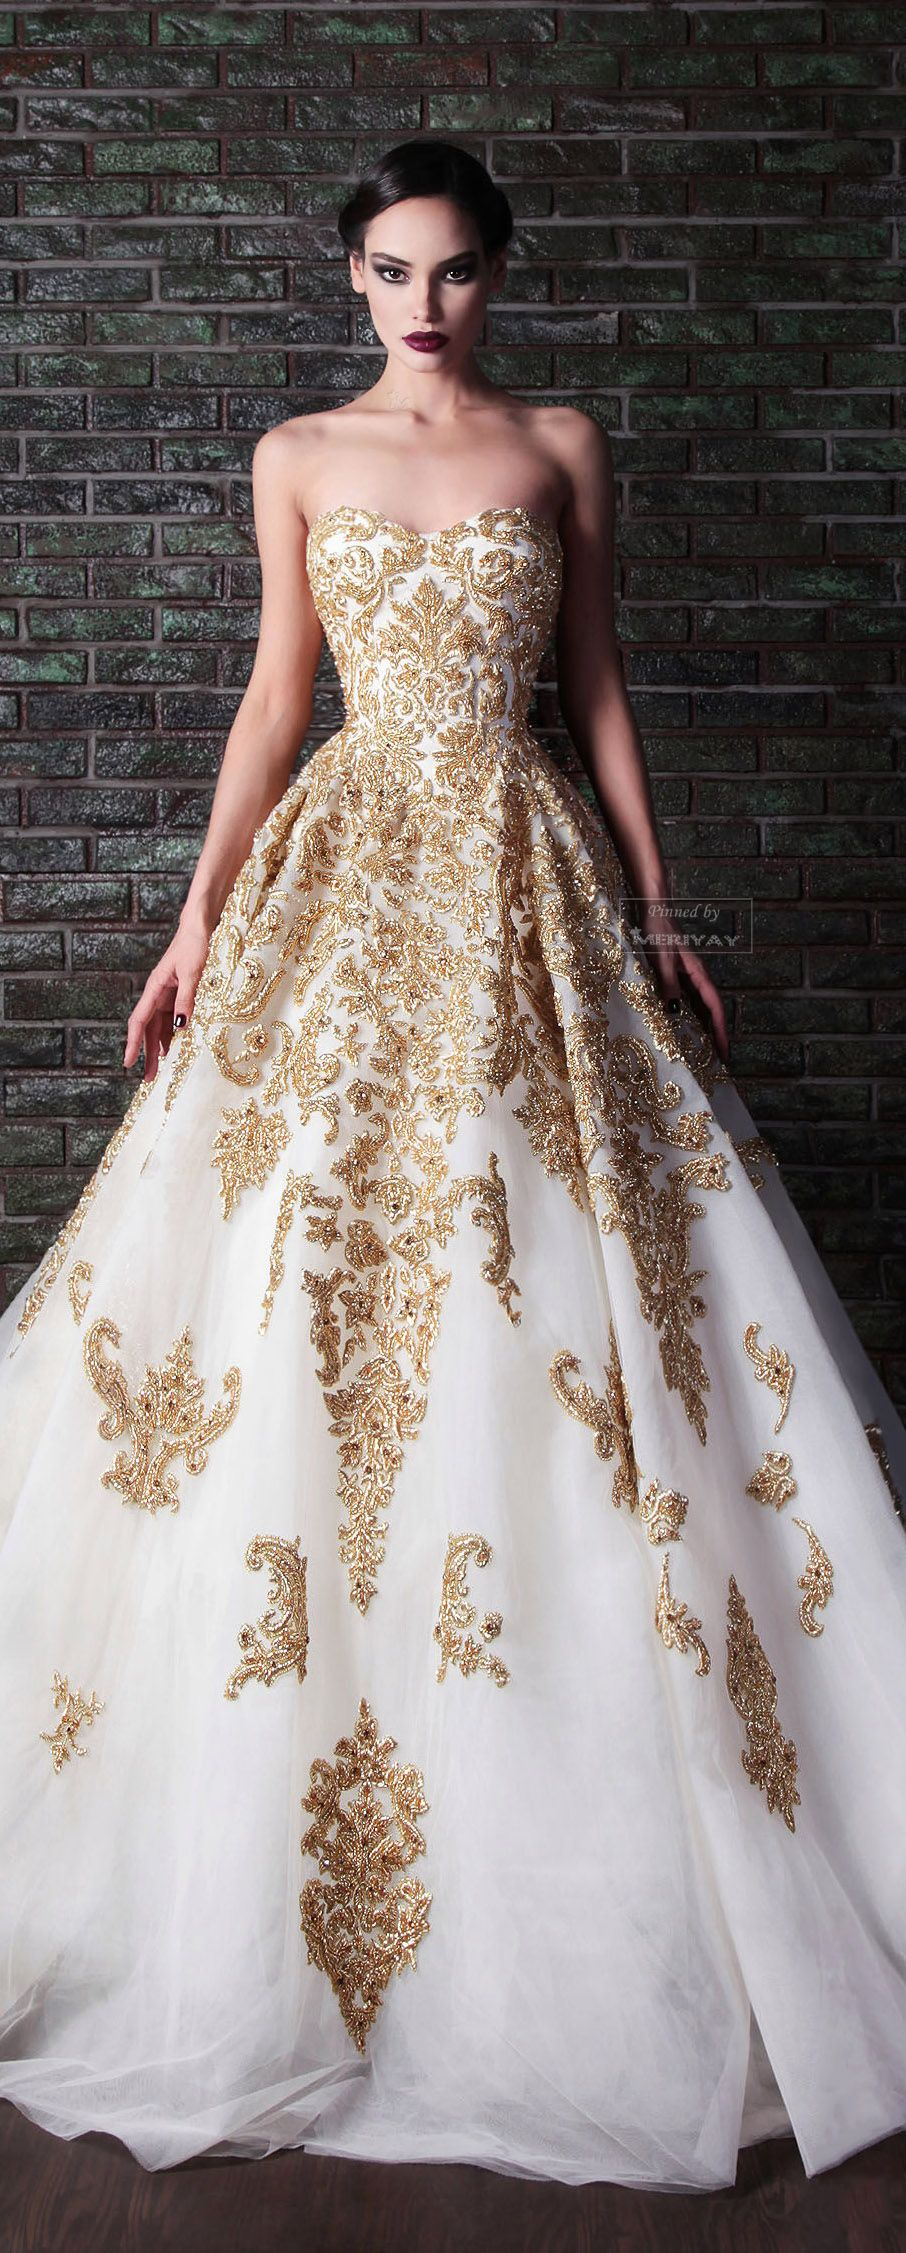 Cheap dress wedding gown Buy Quality gown peach directly from China dress childrens Suppliers 2014 New Arrival Luxurious Rami Kadi Beaded Sequins Gold